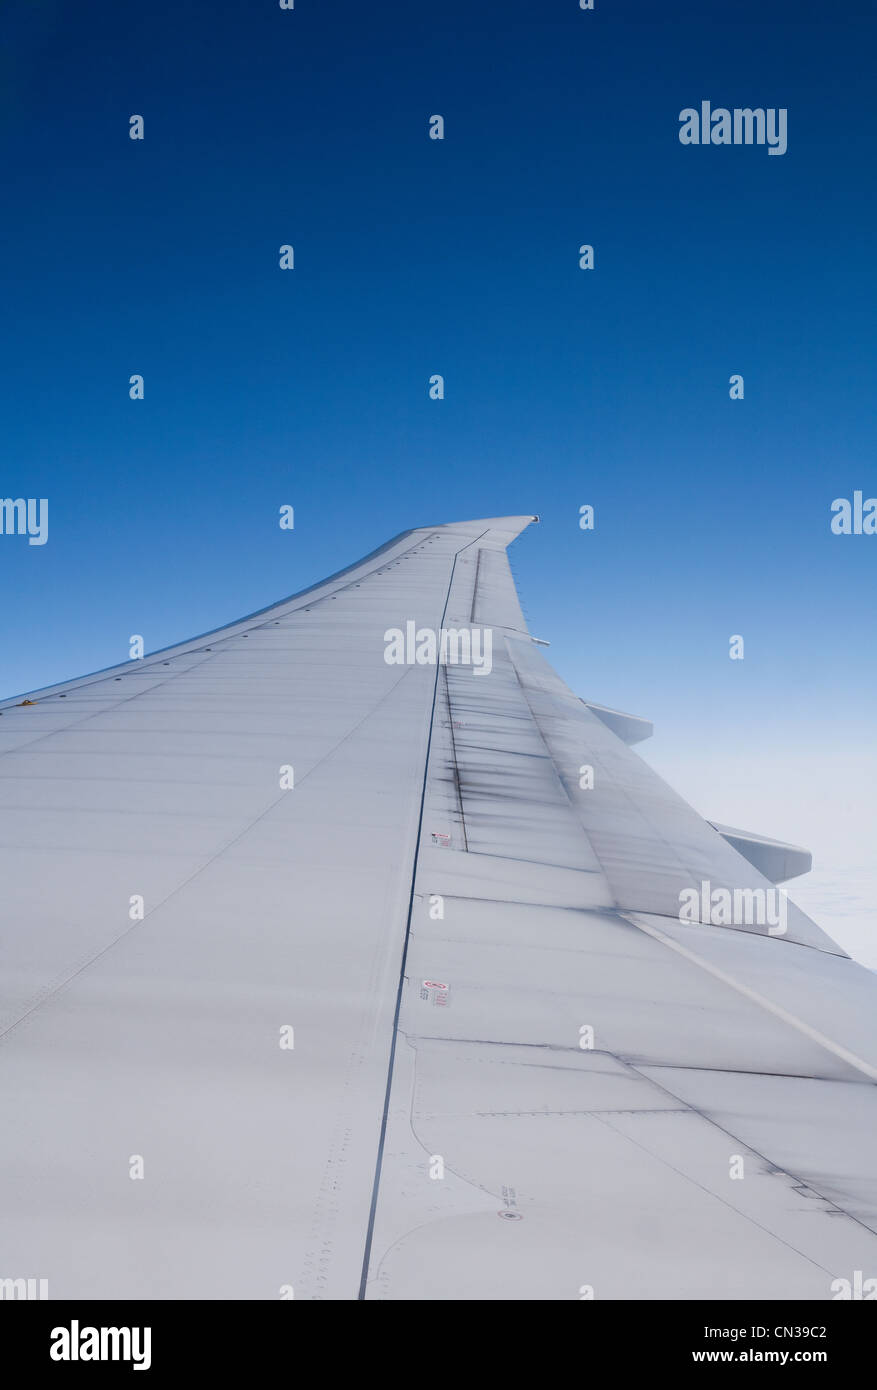 Airplane wing seen from inside commercial jet - Stock Image